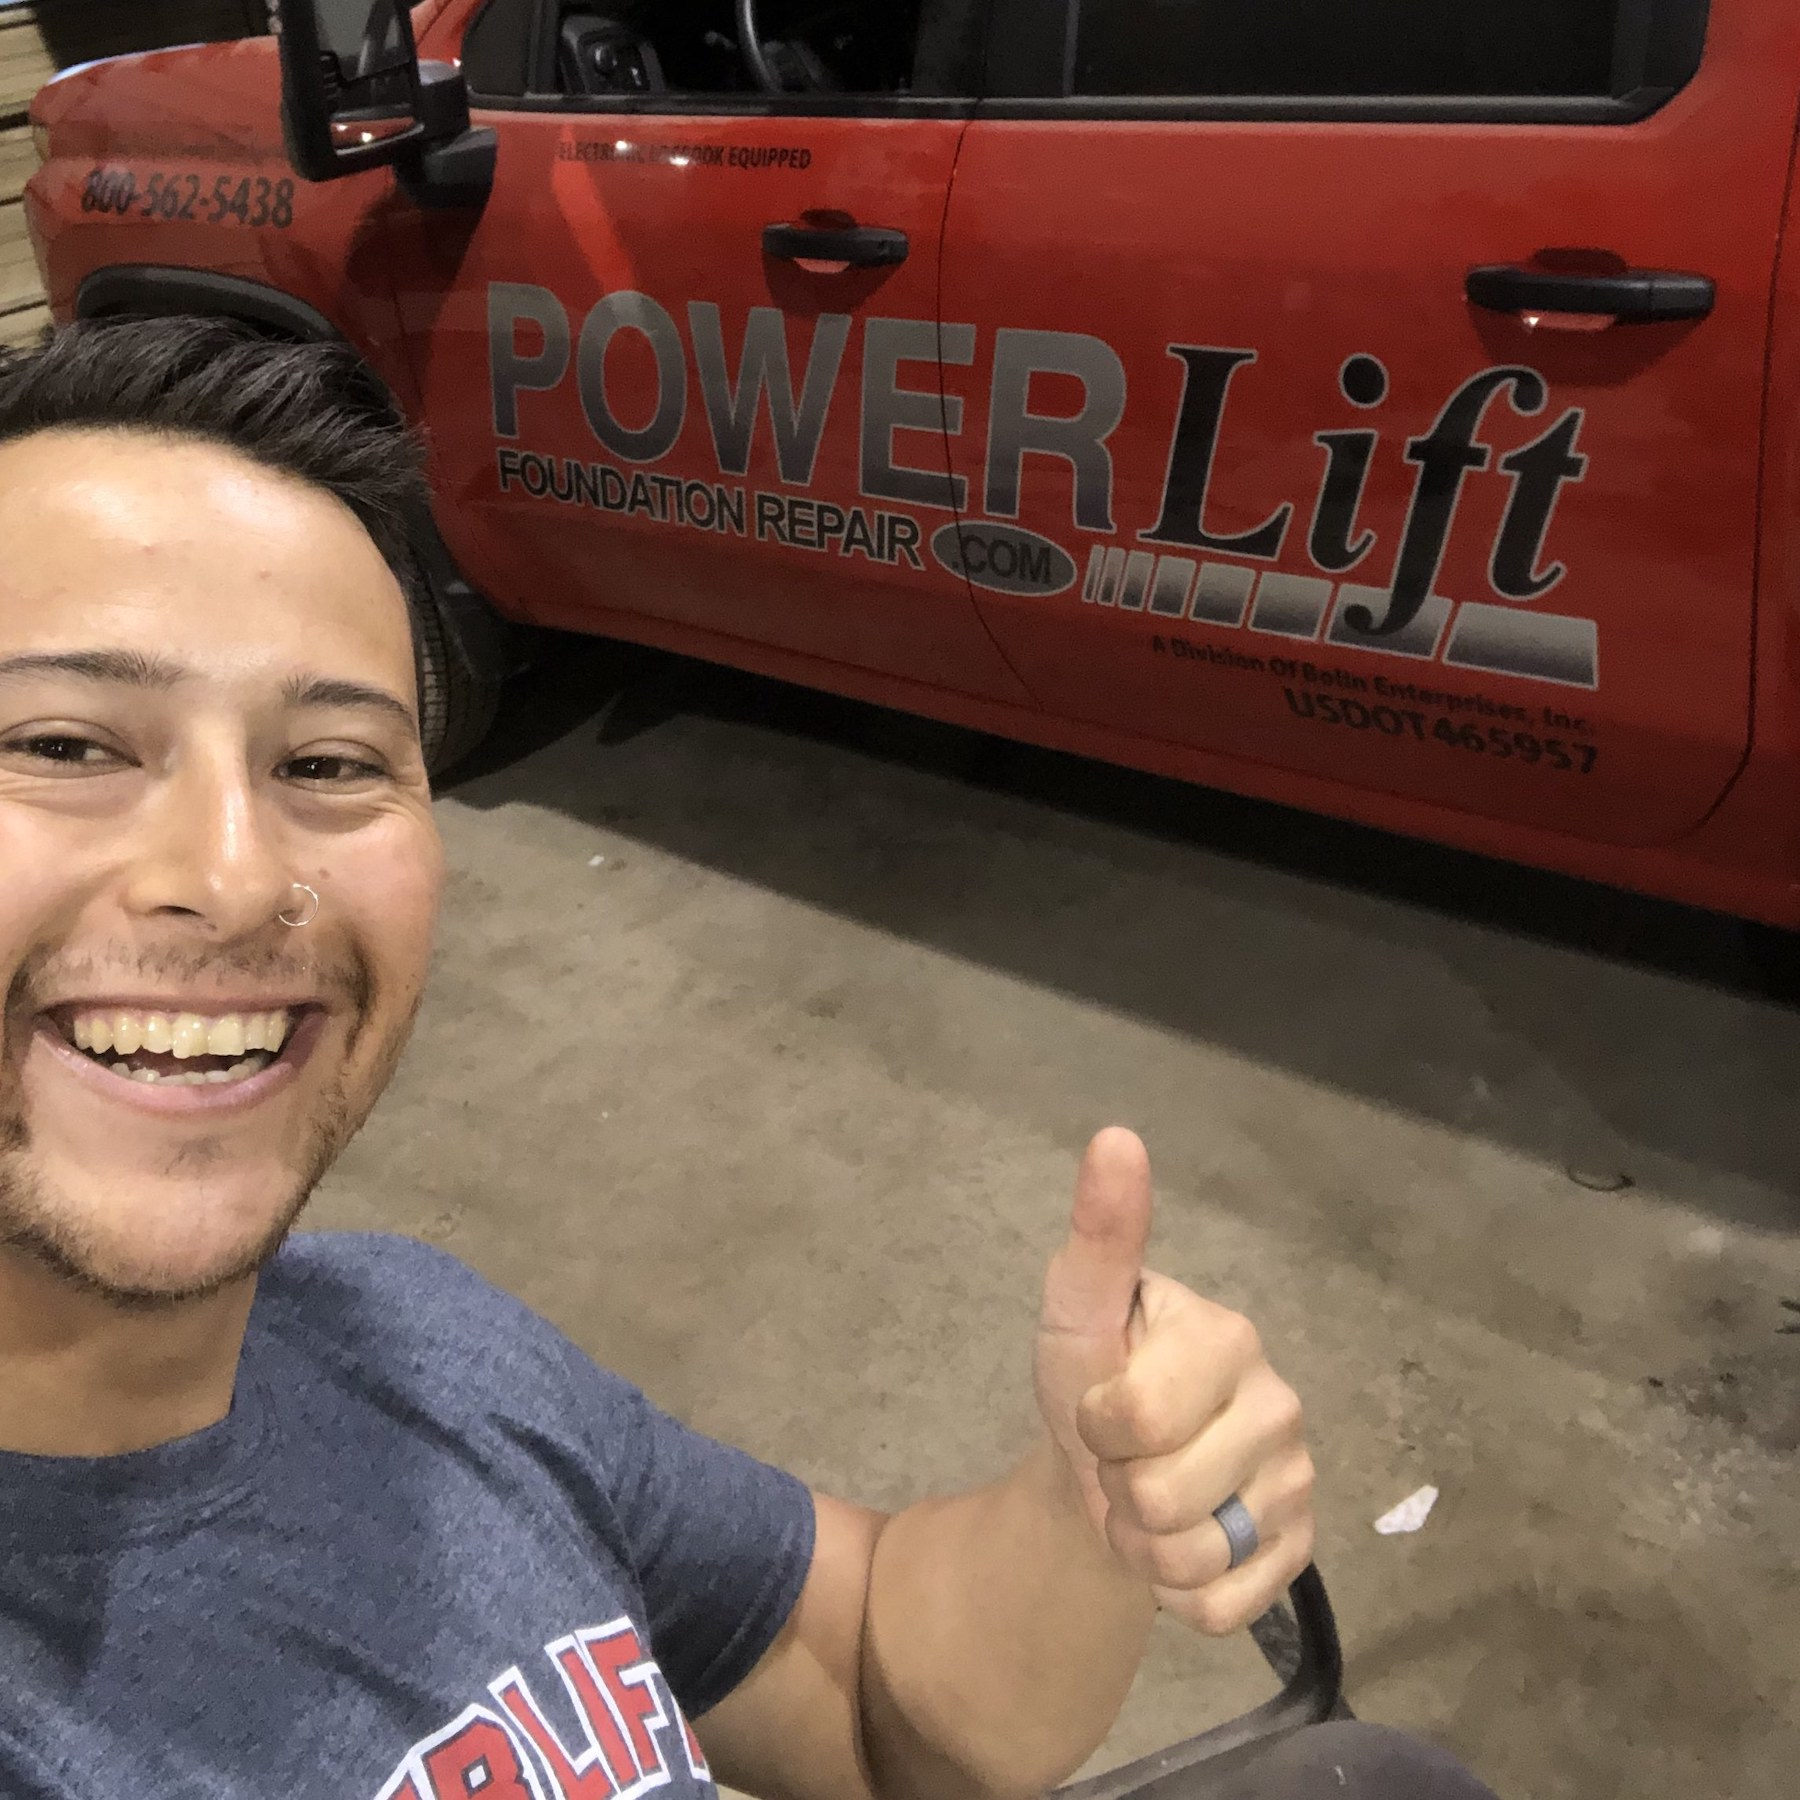 Image of Jordan giving a thumbs up in front of a red pickup.